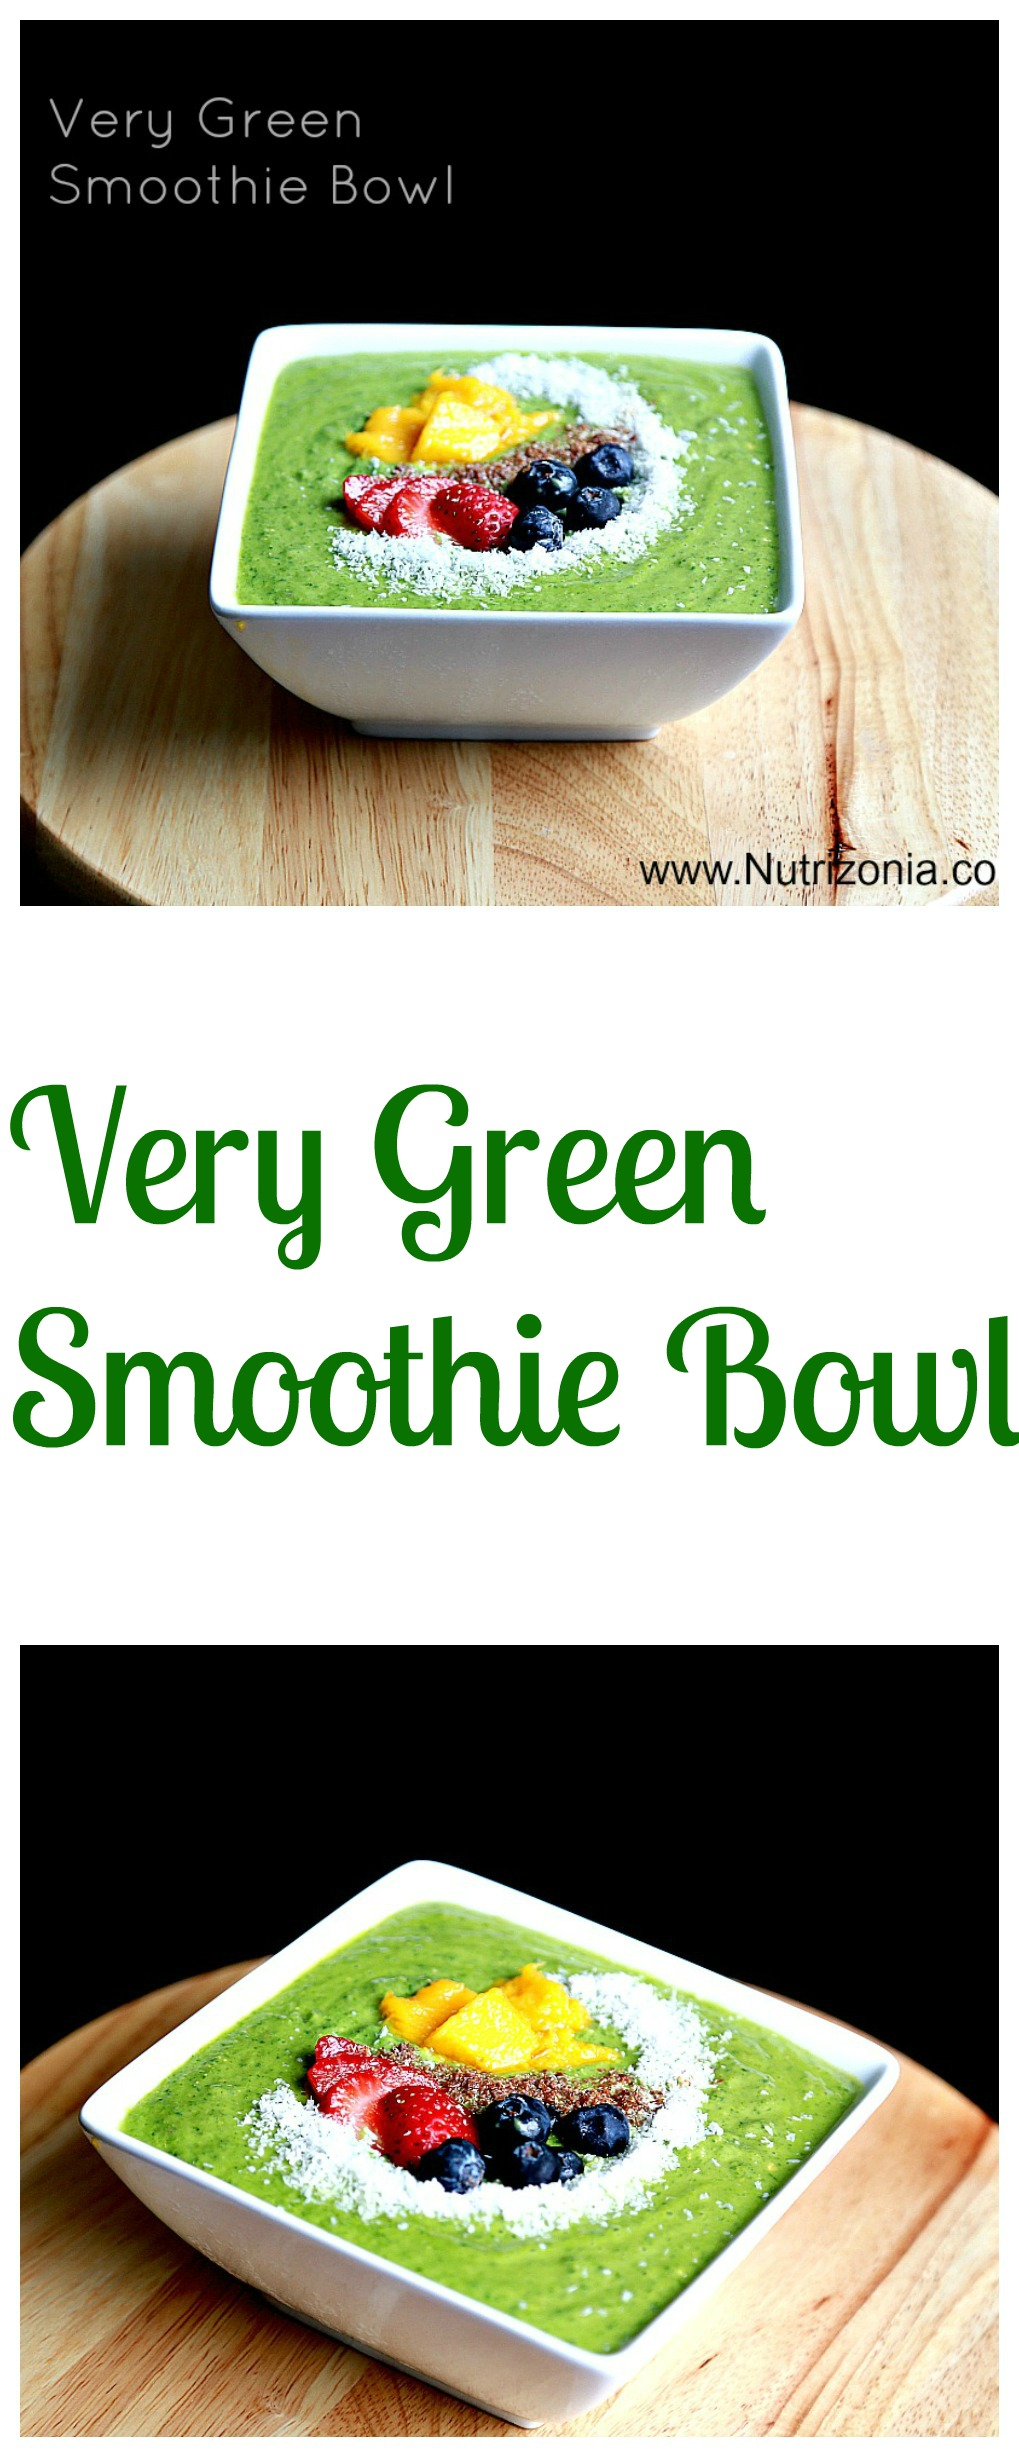 PicMonkey Collage smoothie bowl edited 1